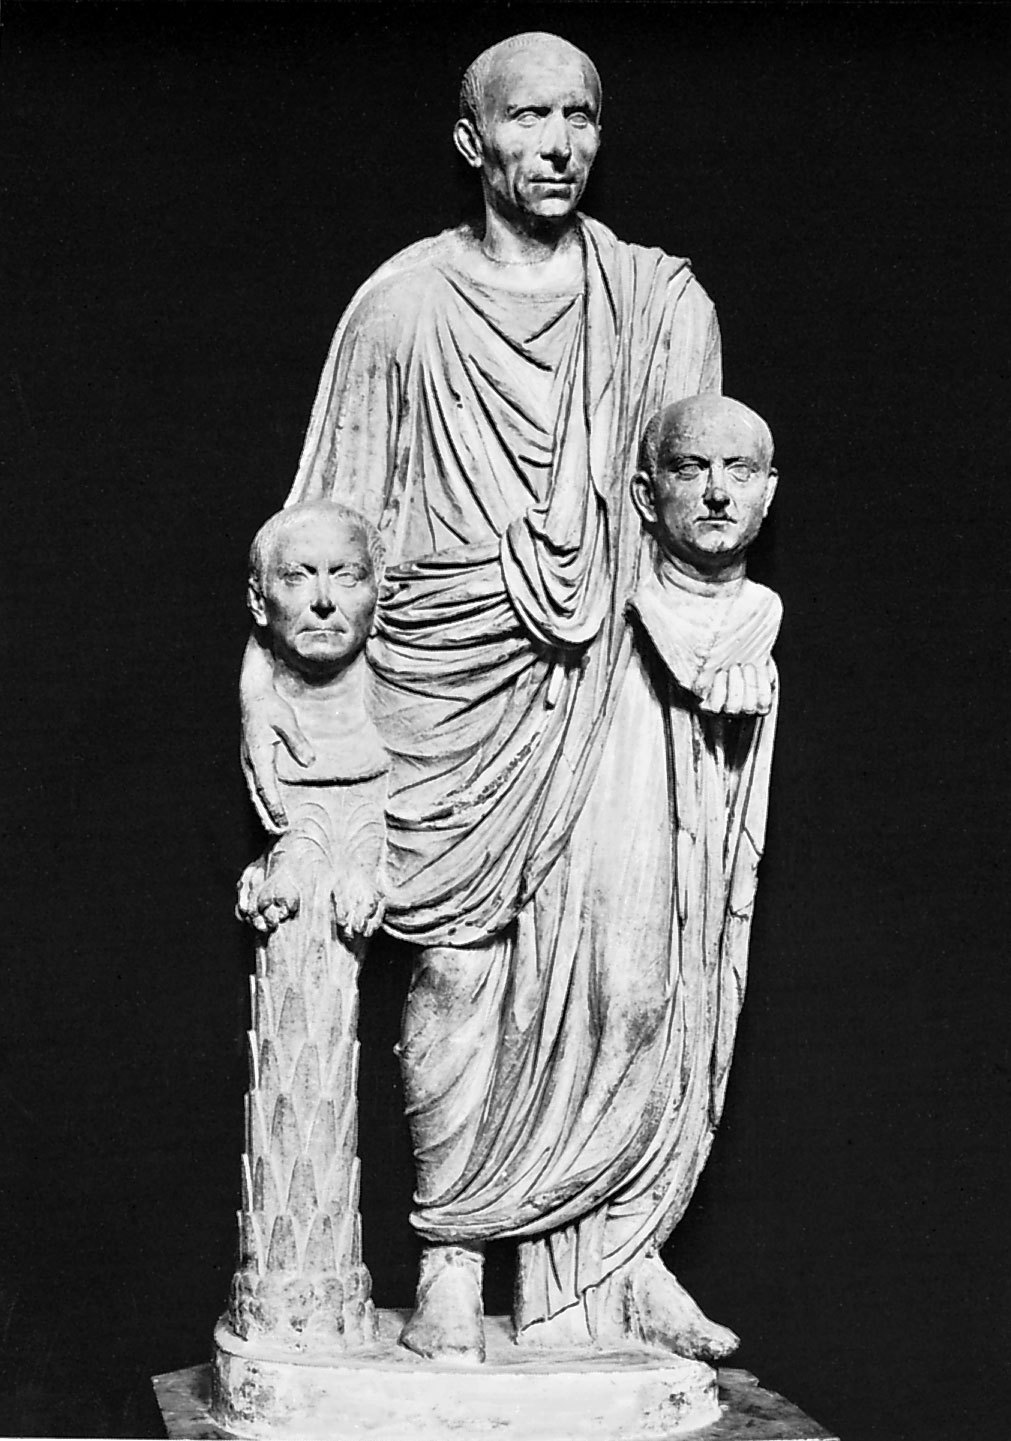 The Ancient Roman sculpture Patrician Carrying Busts A Roman man holding busts of his ancestors. Late first century BC, made of marble and is life sized. The great importance that Romans attached to family and lineage is exemplified here in this austere sculpture, and also is an example of the development of highly realistic Roman portraiture during the republican era. This staute also shows the Roman belief in respect for authority. The high level of realism of the sculpture may have been assisted by the use death masks. Shortly after someones death a wax mask was modeled on the face of the dead and was then transfered to stone. Masks of the ancestors of the dead were carried and worn in the funeral processions, and portrait busts and images of ancestors were generally displayed in homes to show the importance of family and ancestors.